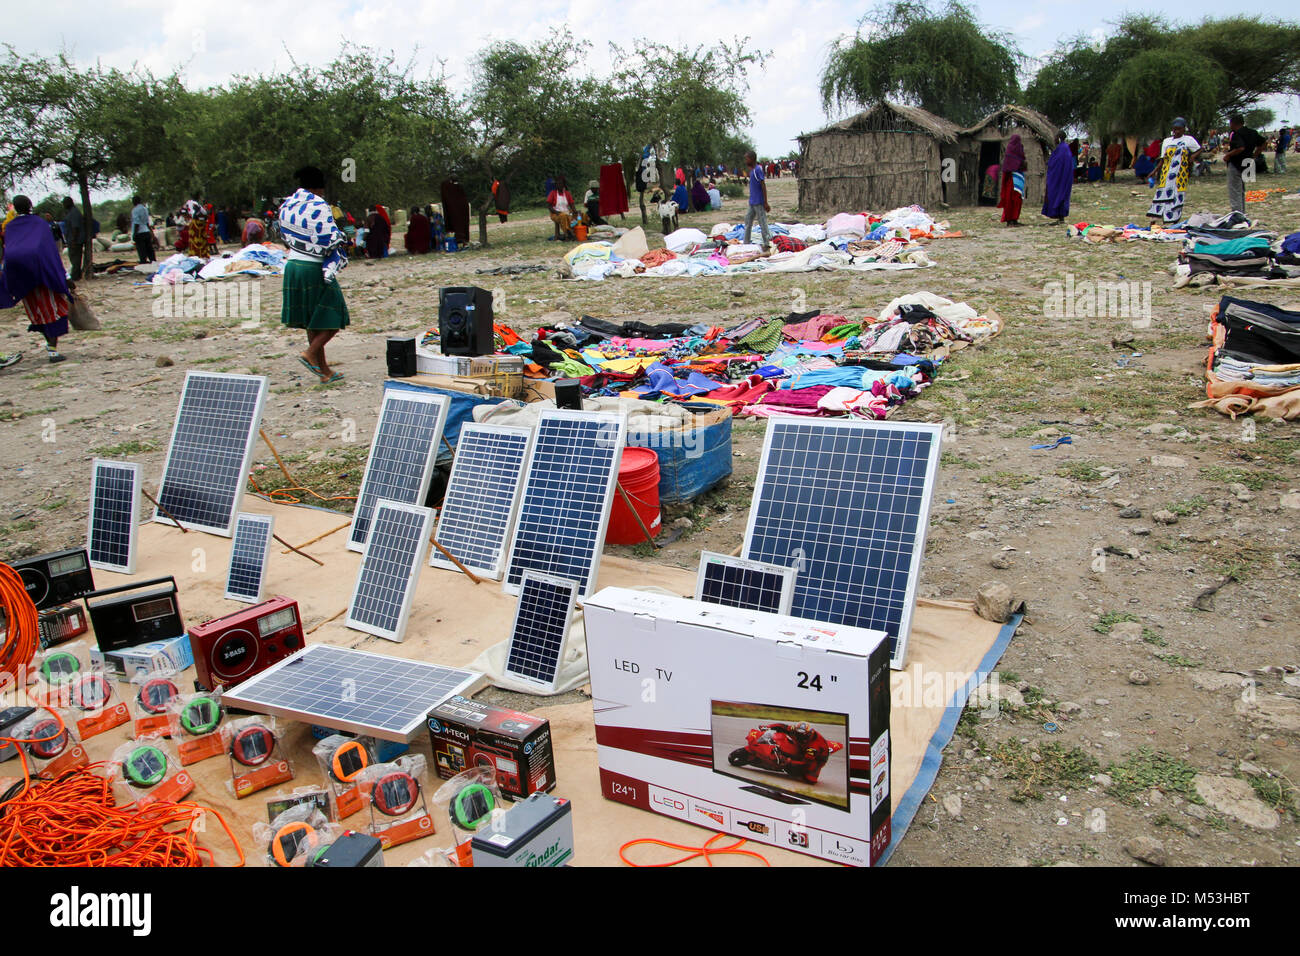 Solar panels for sale the the Massai Market, Tanzania - Stock Image